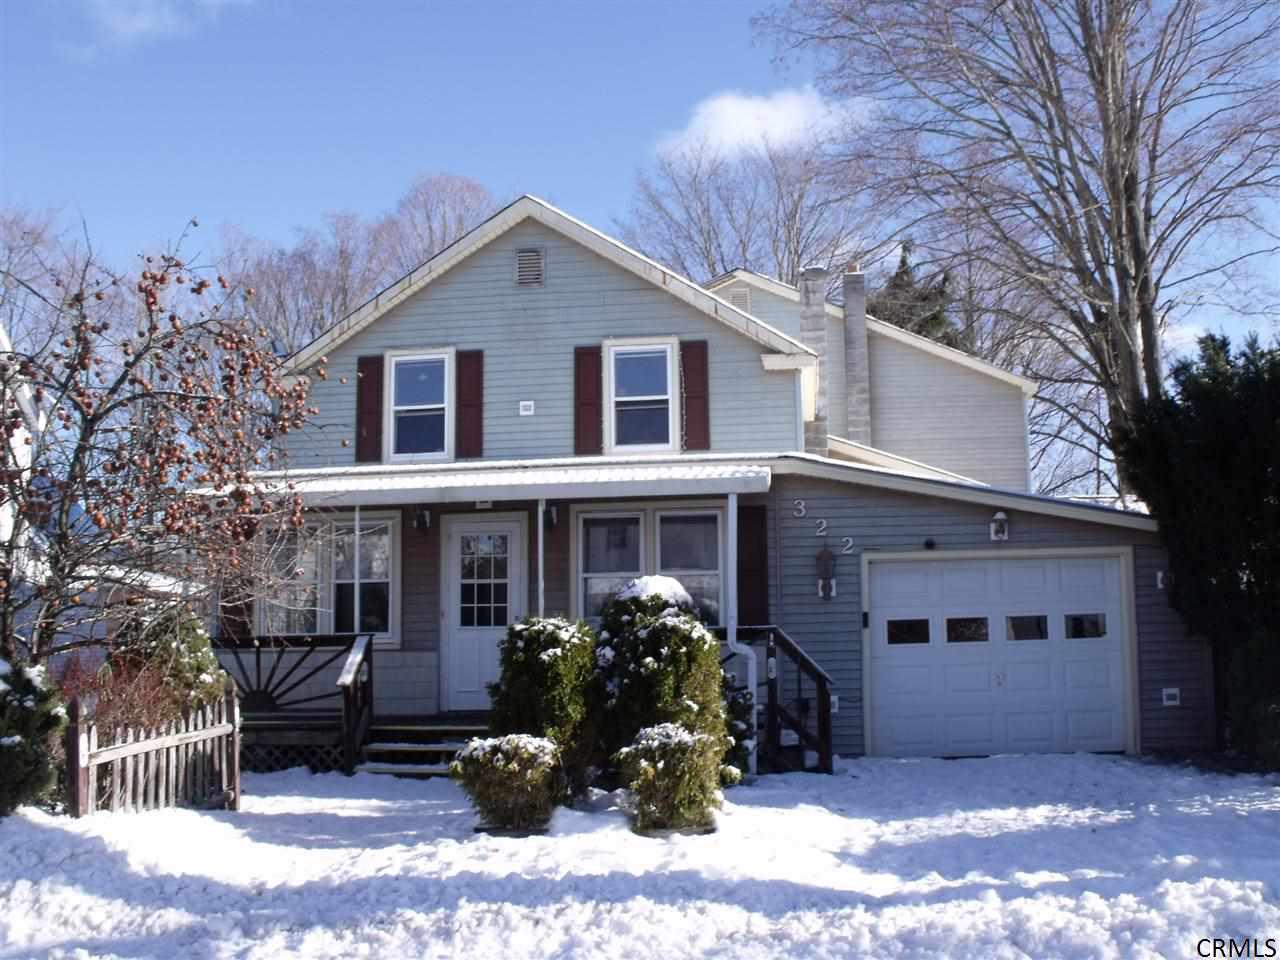 Northville new york ny fsbo homes for sale northville for Houses for sale near nyc